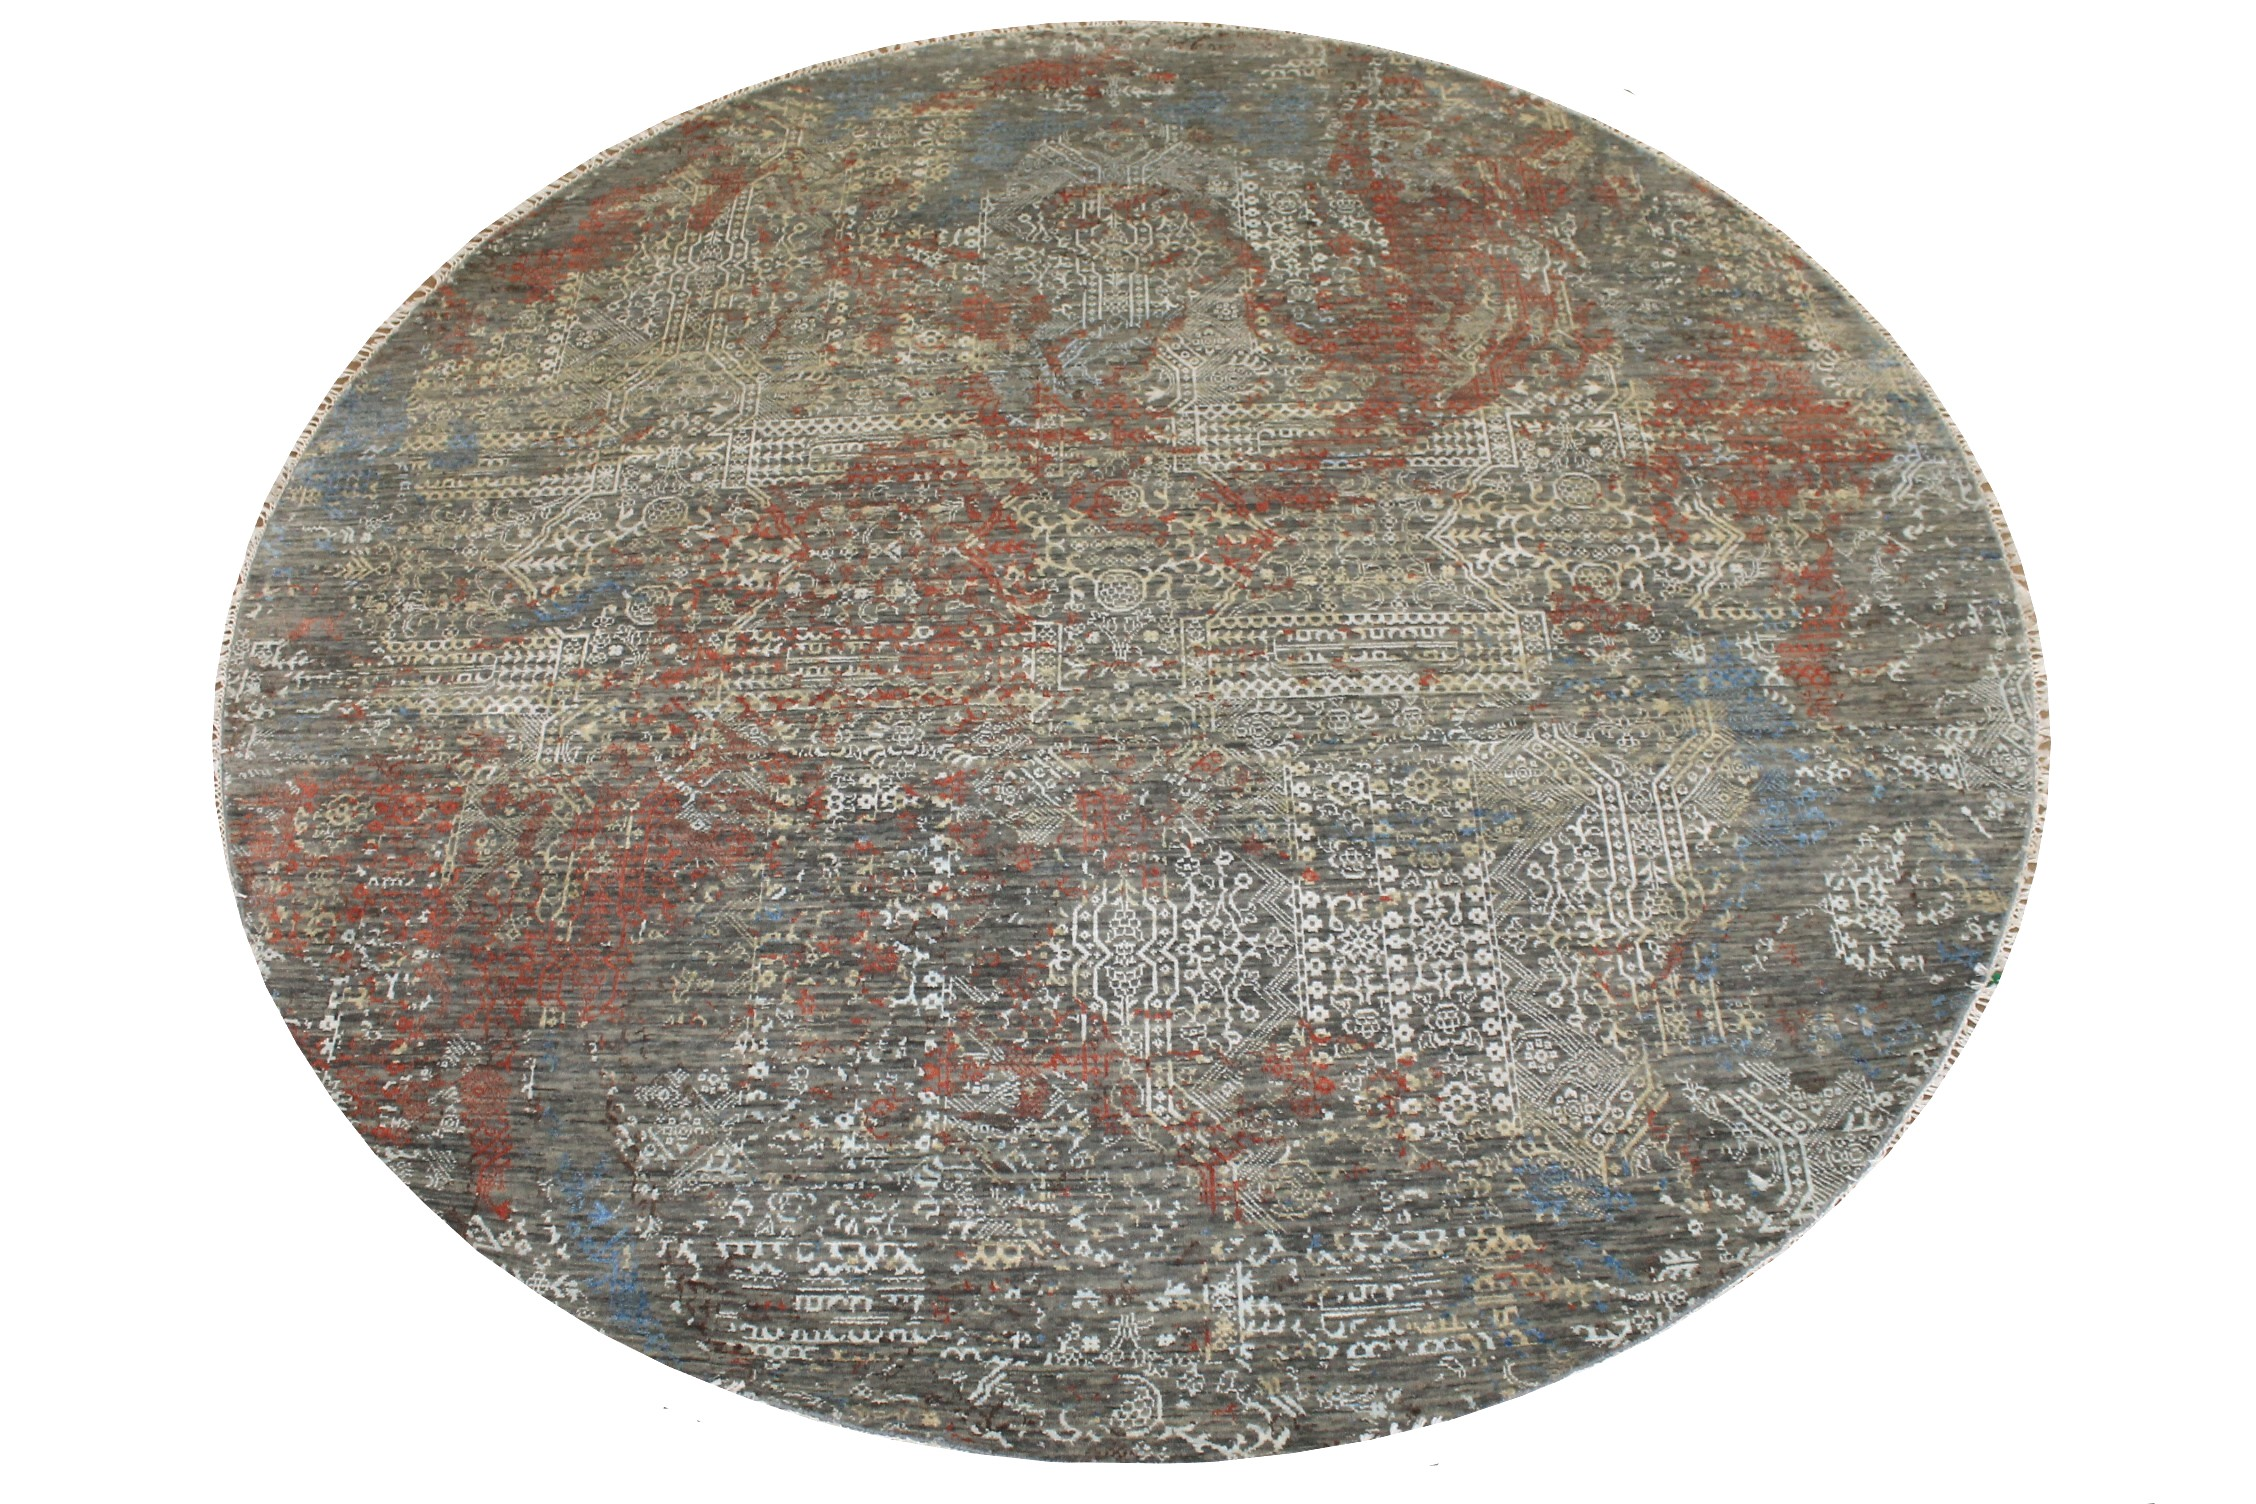 8 ft. Round & Square Transitional Hand Knotted Wool & Bamboo Silk Area Rug - MR024876